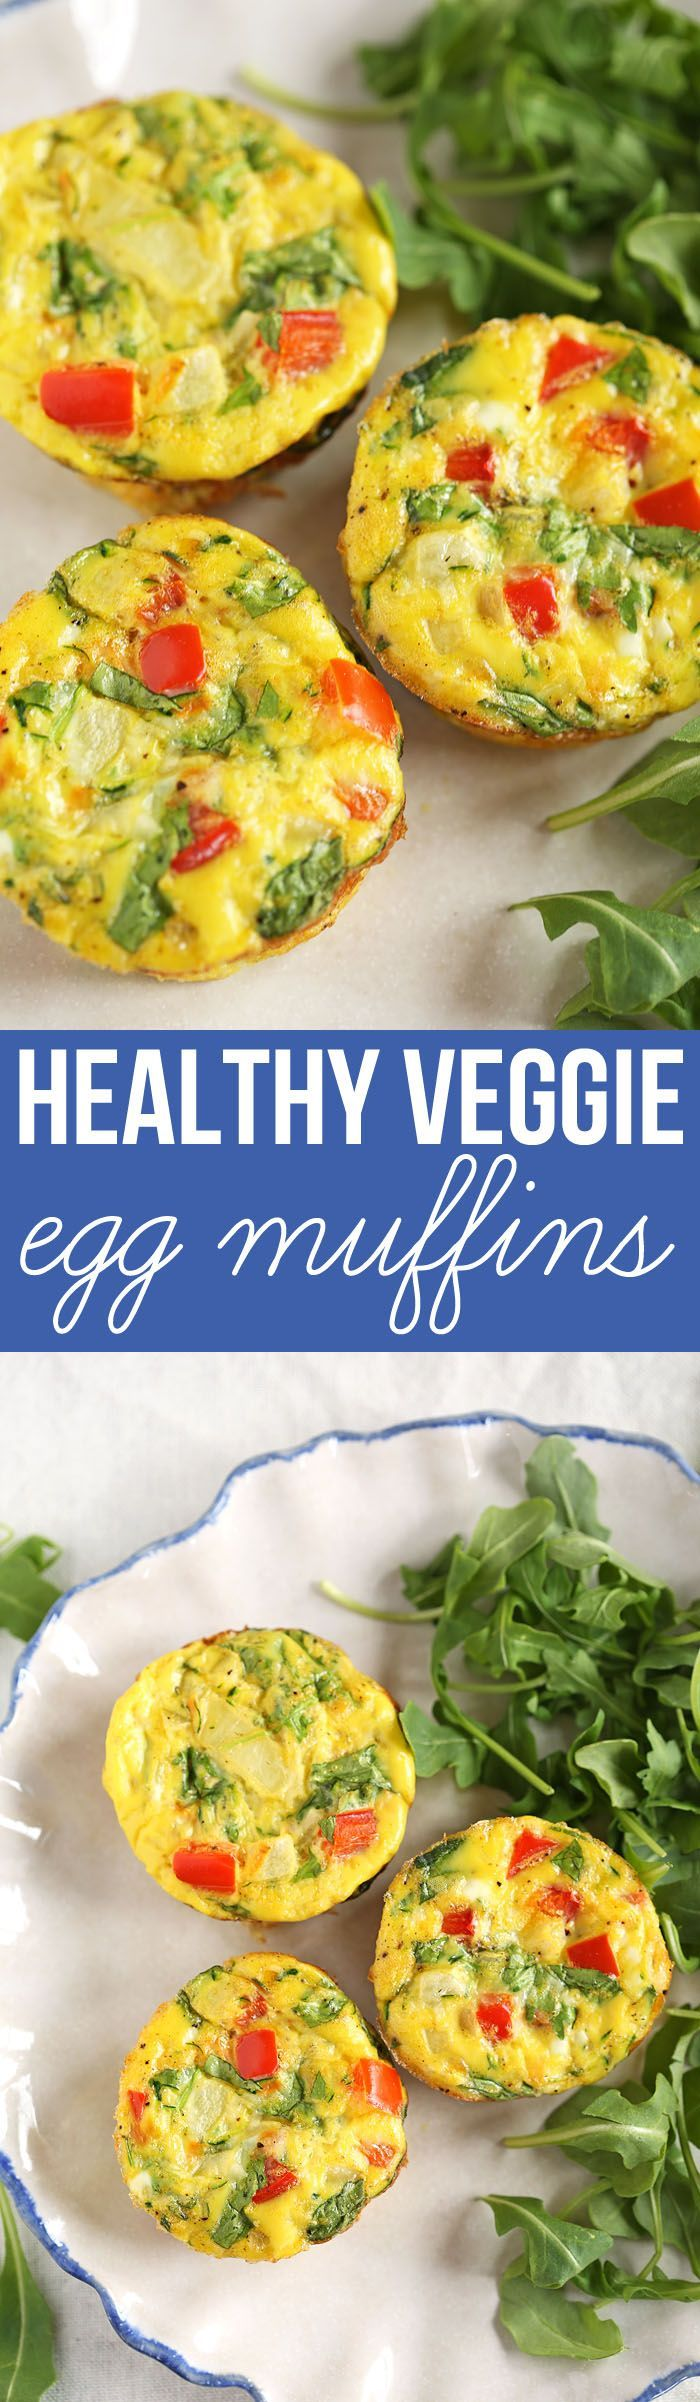 Healthy Breakfast Egg Muffins full of delicious veggies that are super easy to grab on-the-go! http://www.theeasierlife.com/articles/healthy-veggie-egg-muffins/